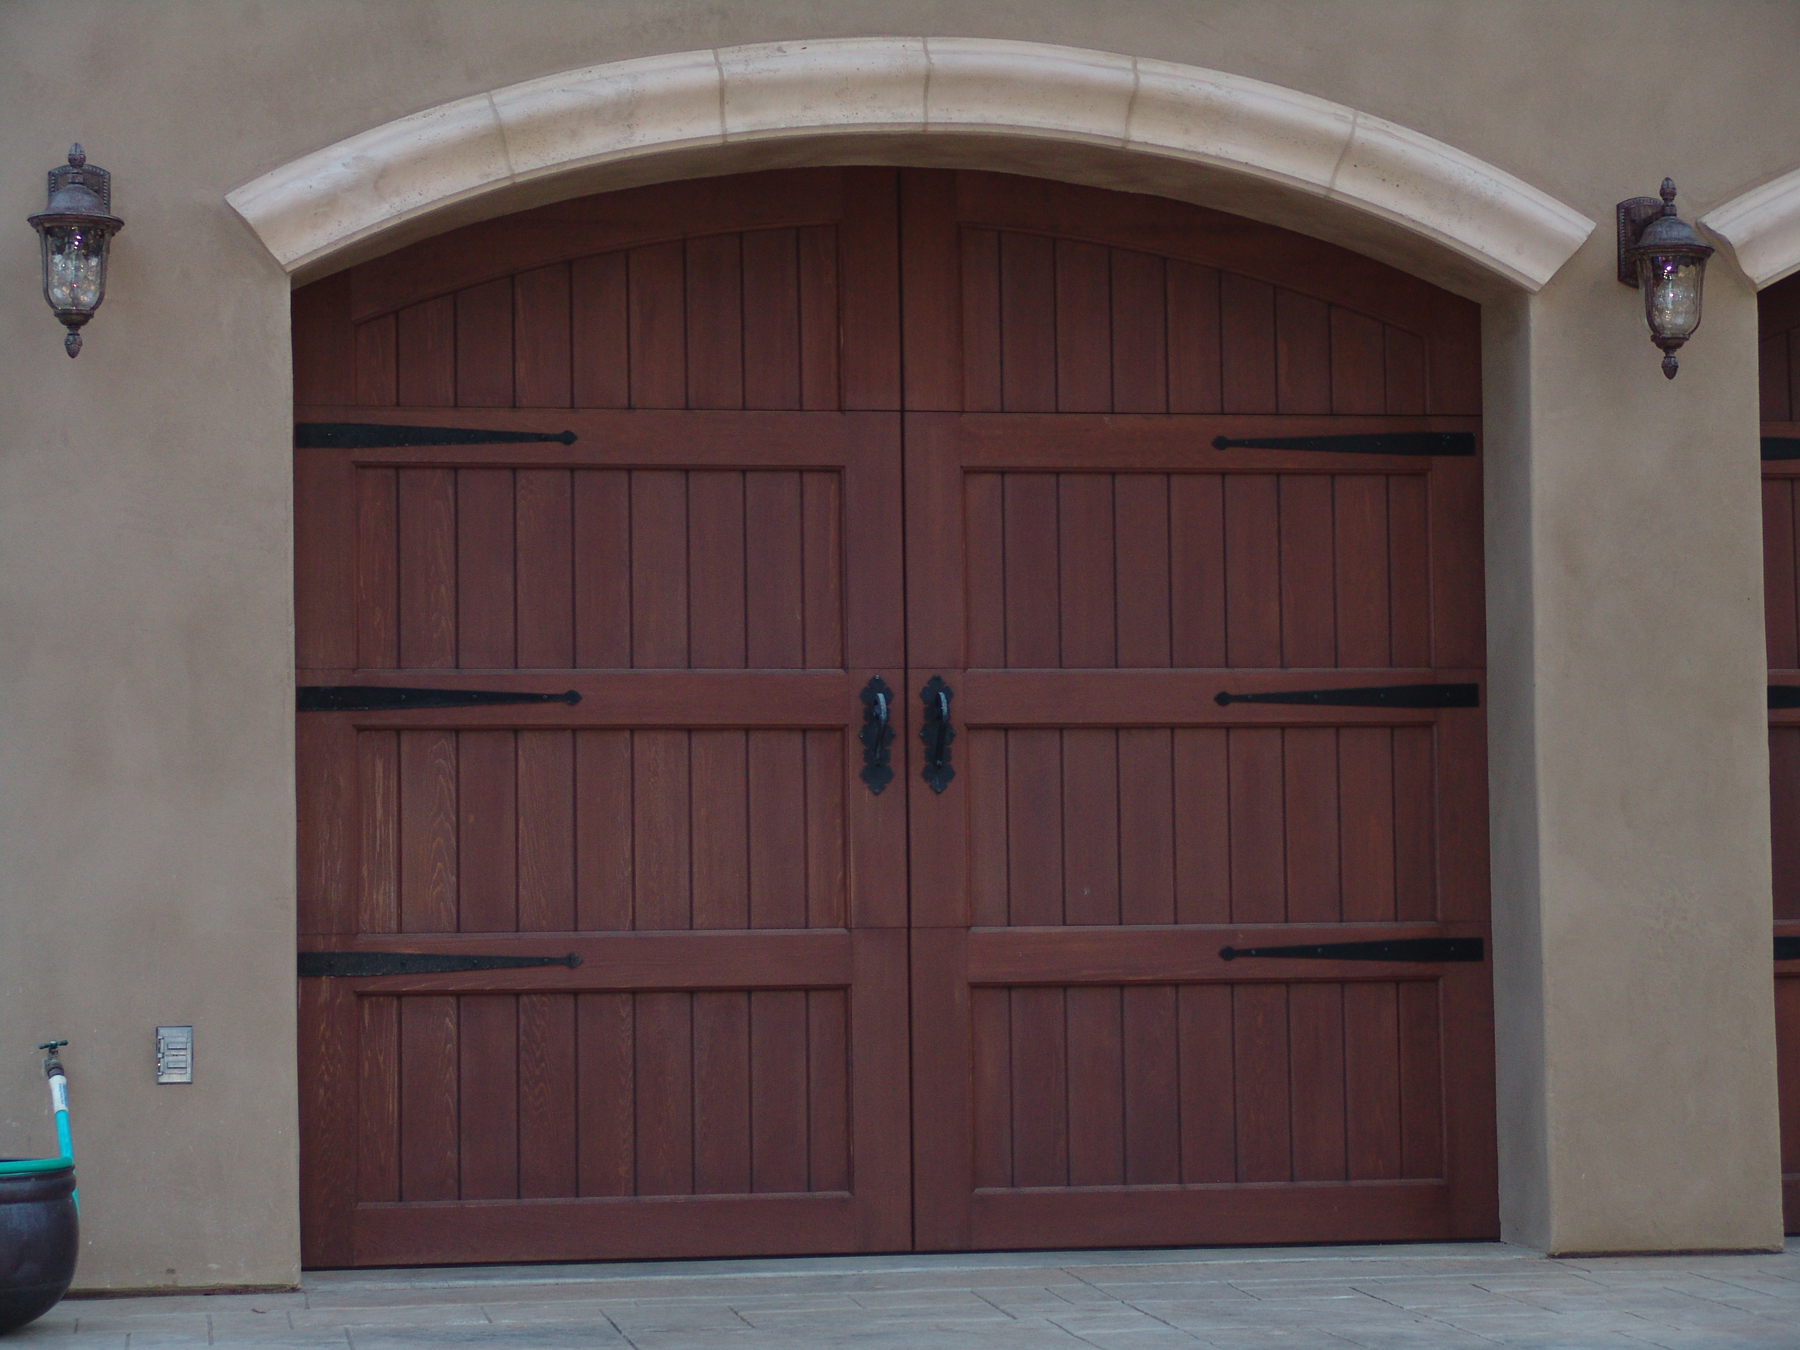 own raleigh its of repair hottechreviews us size door gallery full does amarr designs unique nc why best tags opening albuquerque open garage